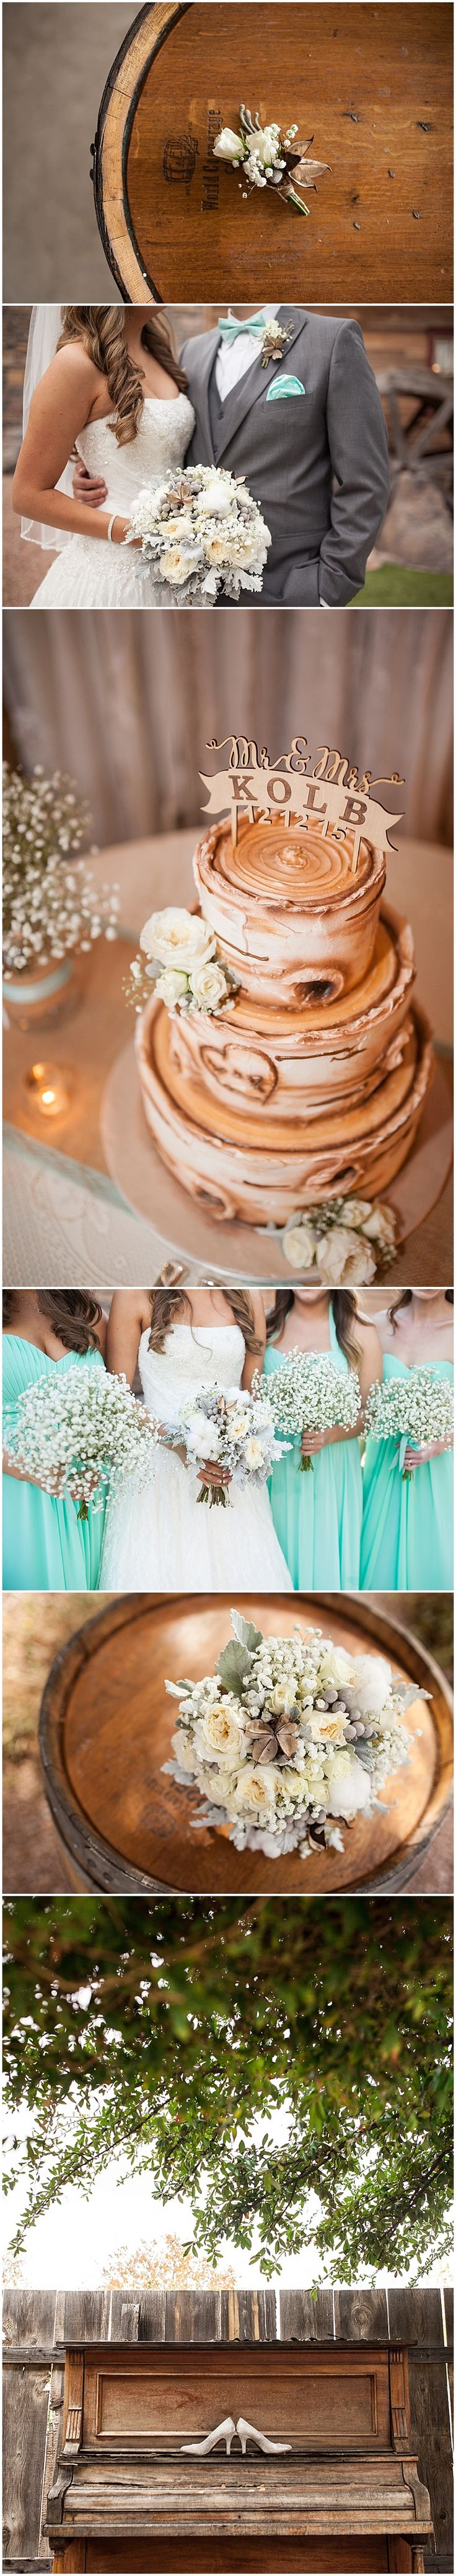 Rustic Shenandoah Mill Wedding with Tiffany Blue bridesmaid dresses and rustic cotton wedding bouquet and wood styled wedding cake